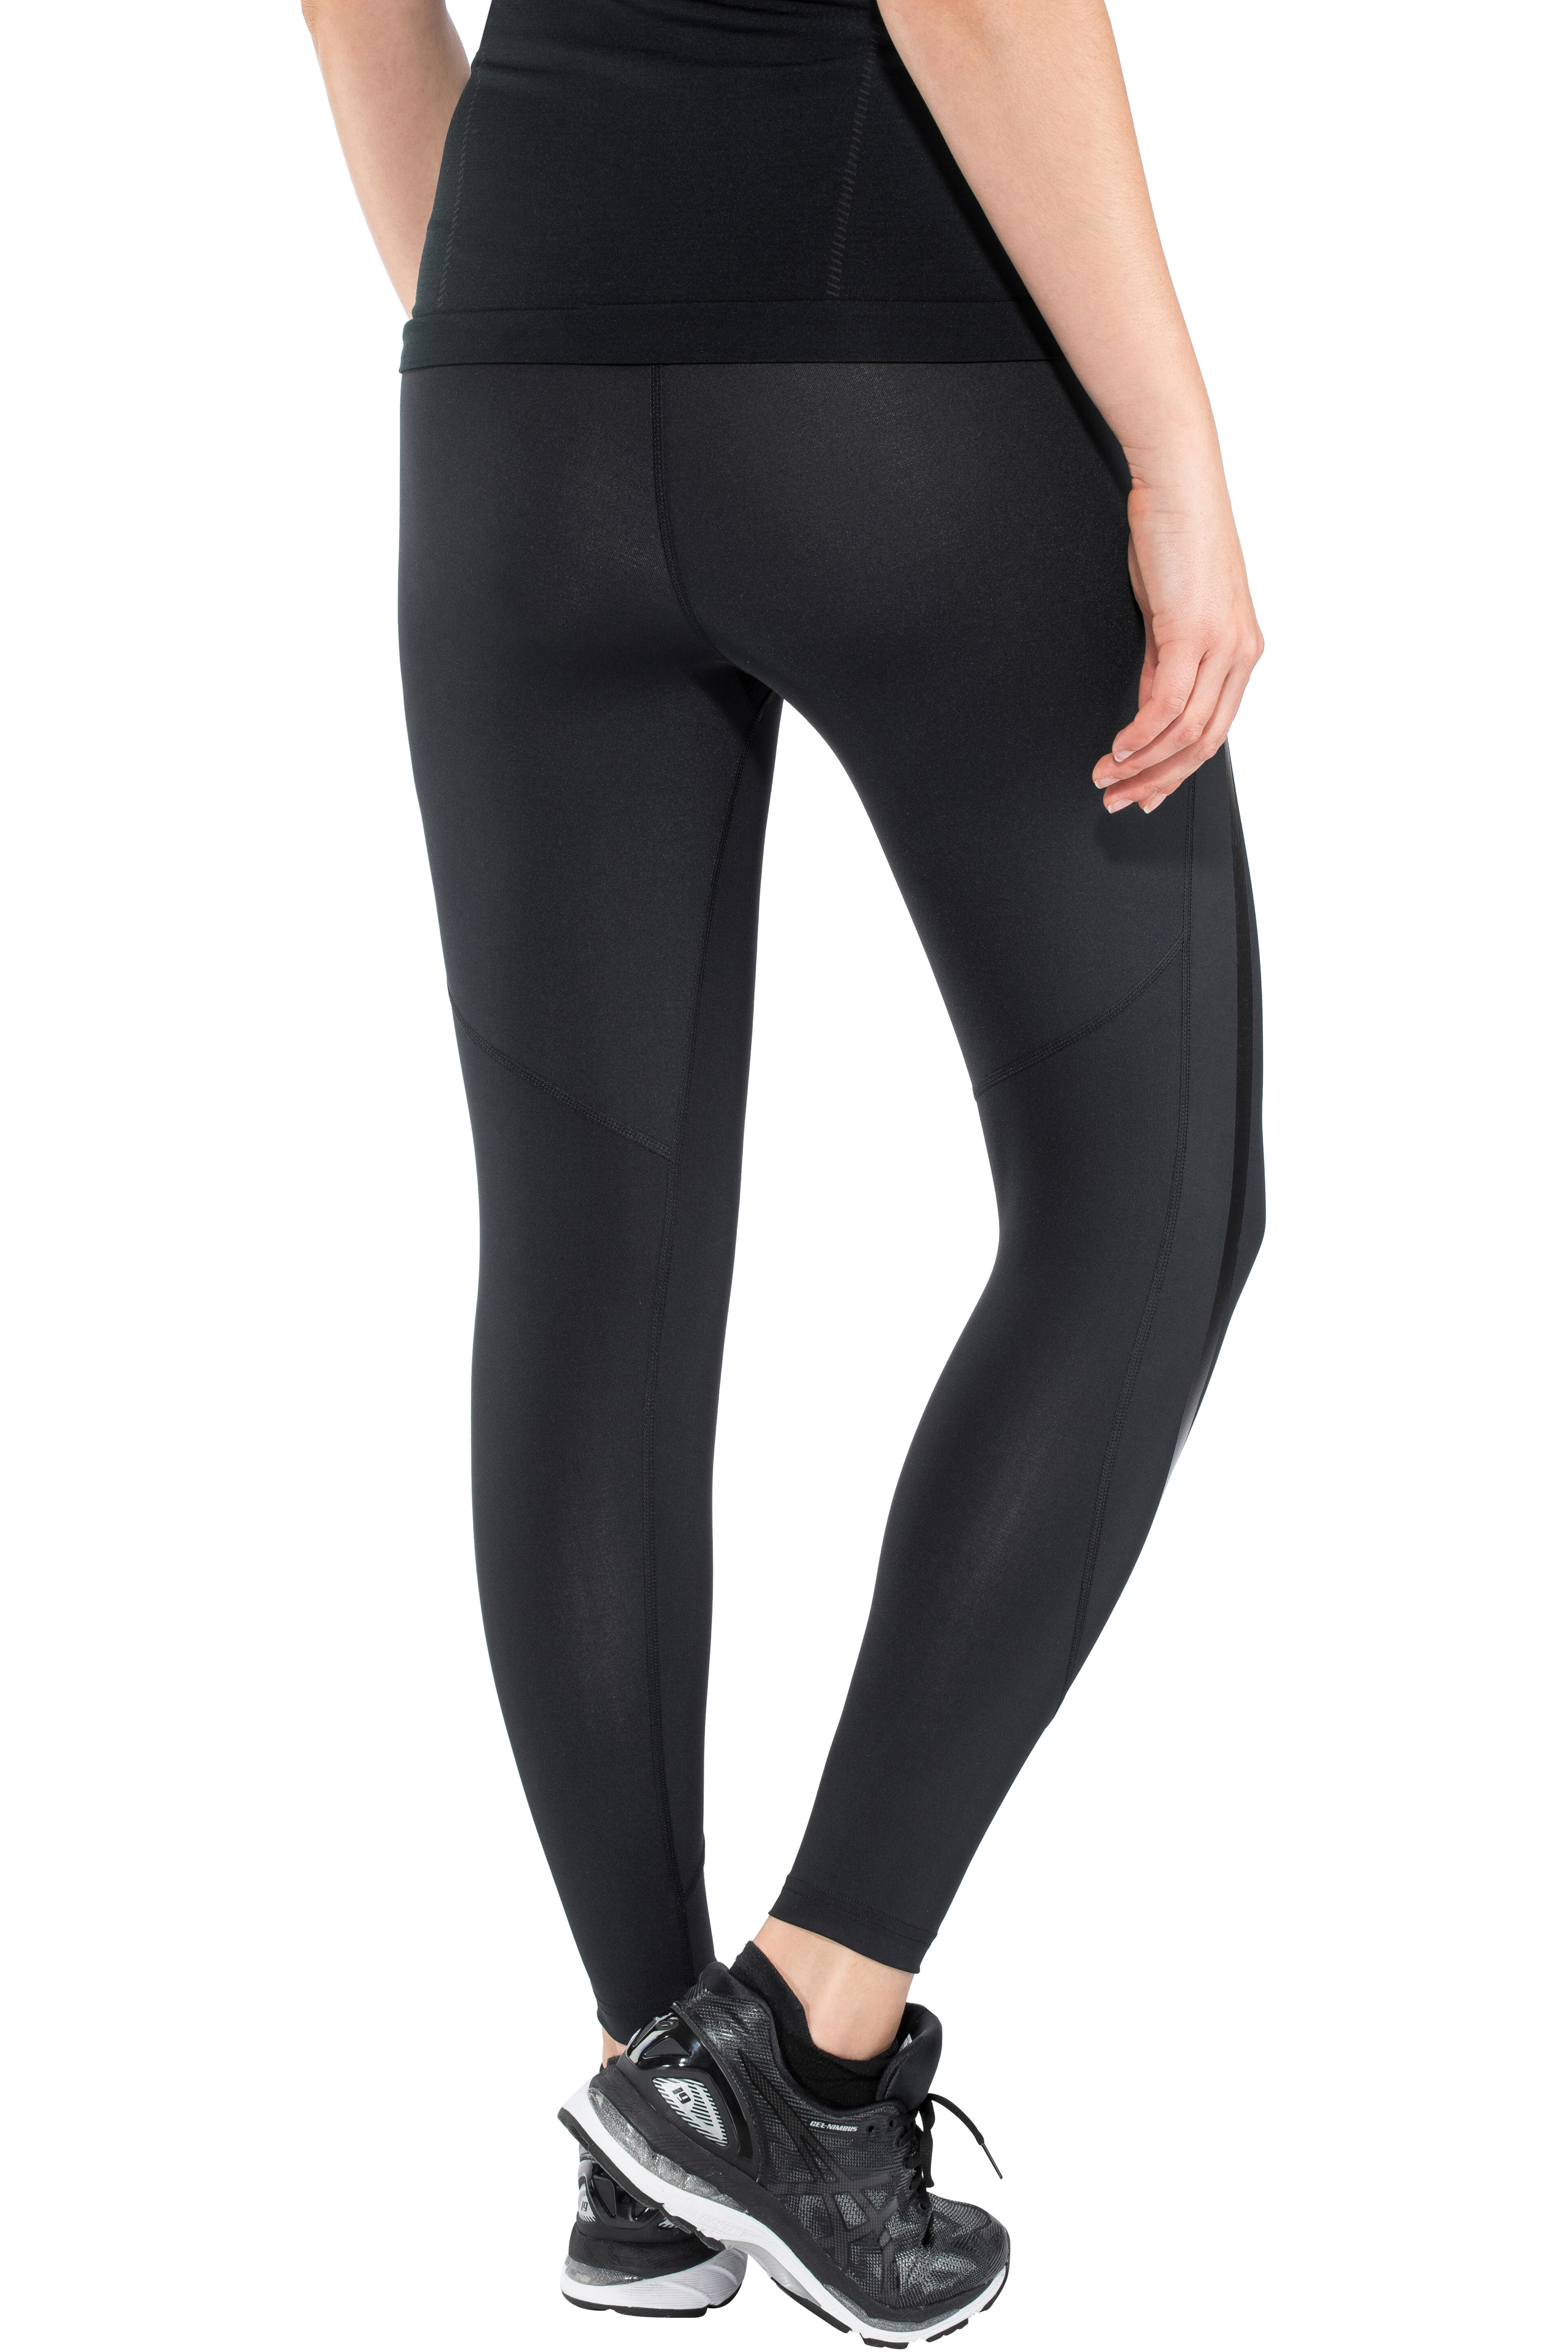 e507a795 2XU Hi-Rise Compression 7/8 Tights Women black/nero at Bikester.co.uk